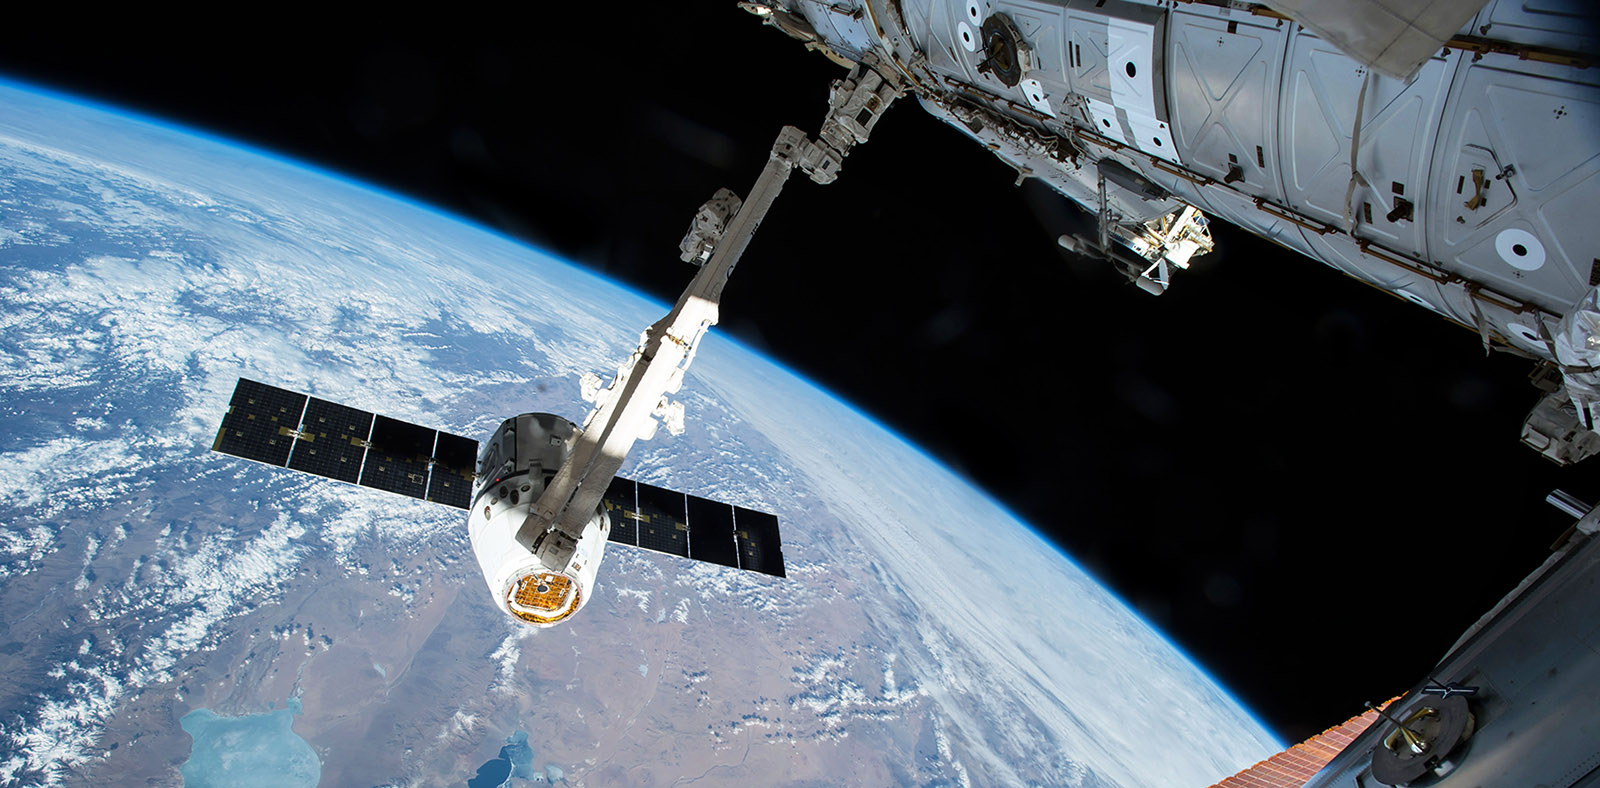 spacex probably spx12 canadarm2 nasa